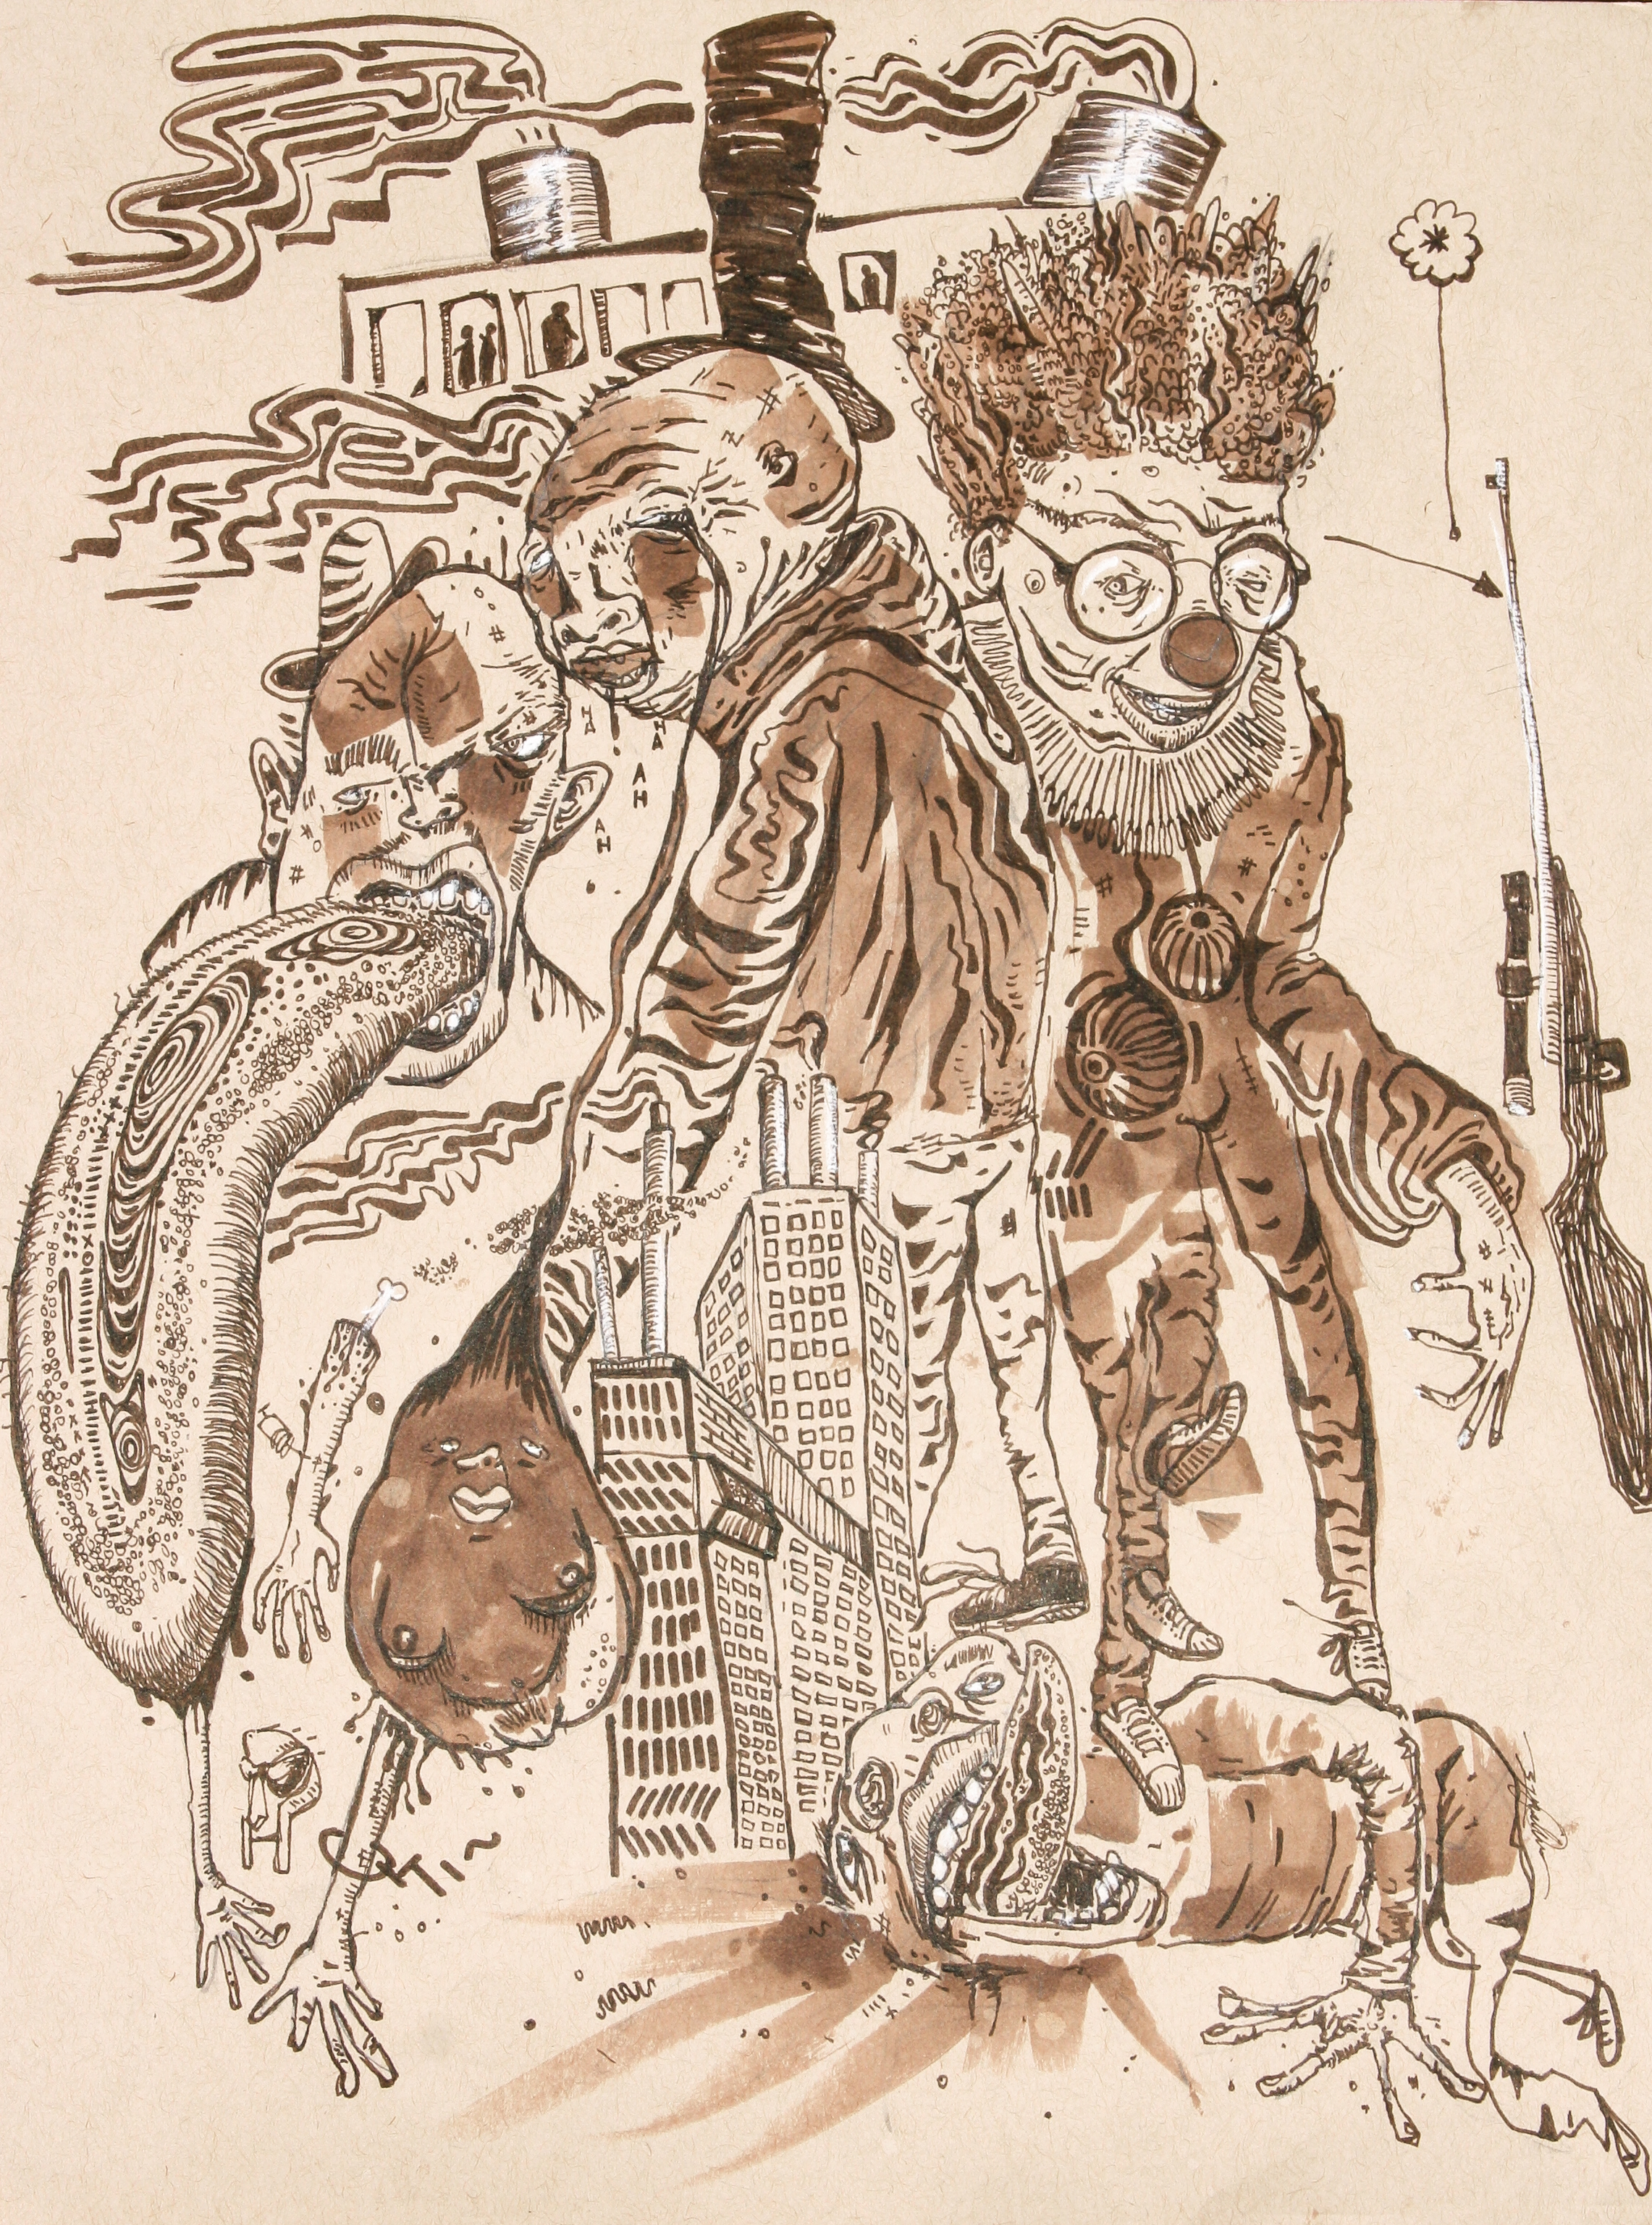 'Fancy Clown' - Visualization of the narrative present in 'Fancy Clown' by Madvillian. Early illustration portraying a strong likeness for violent and sexual content.